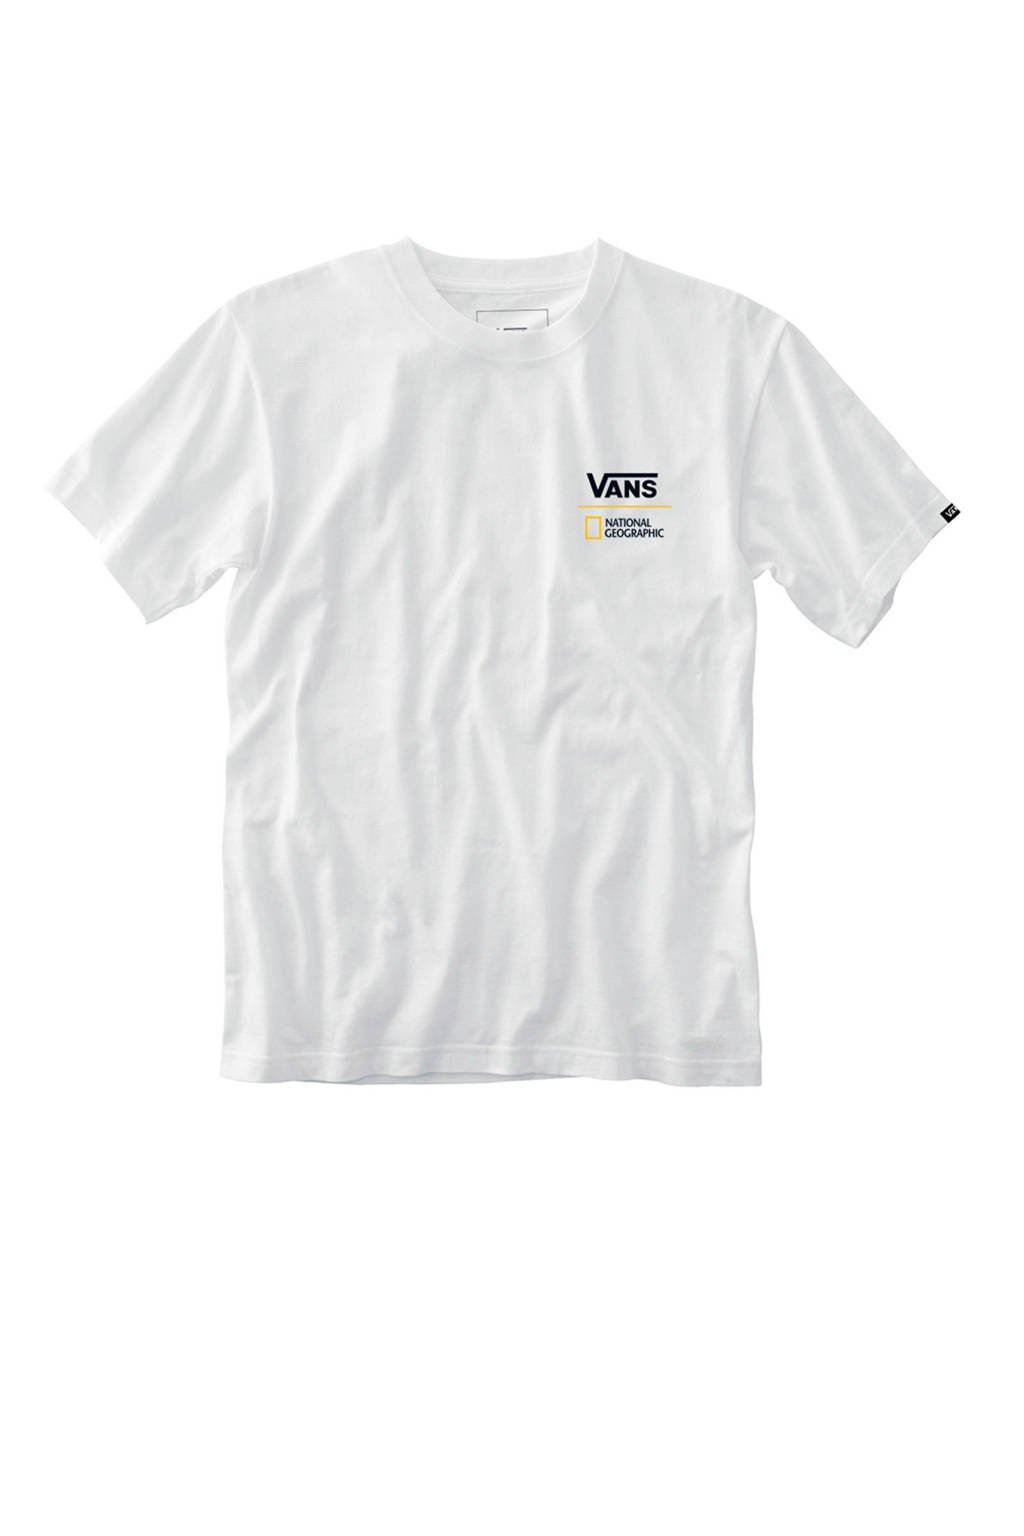 VANS   X National Geographic T-Shirt wit, Wit